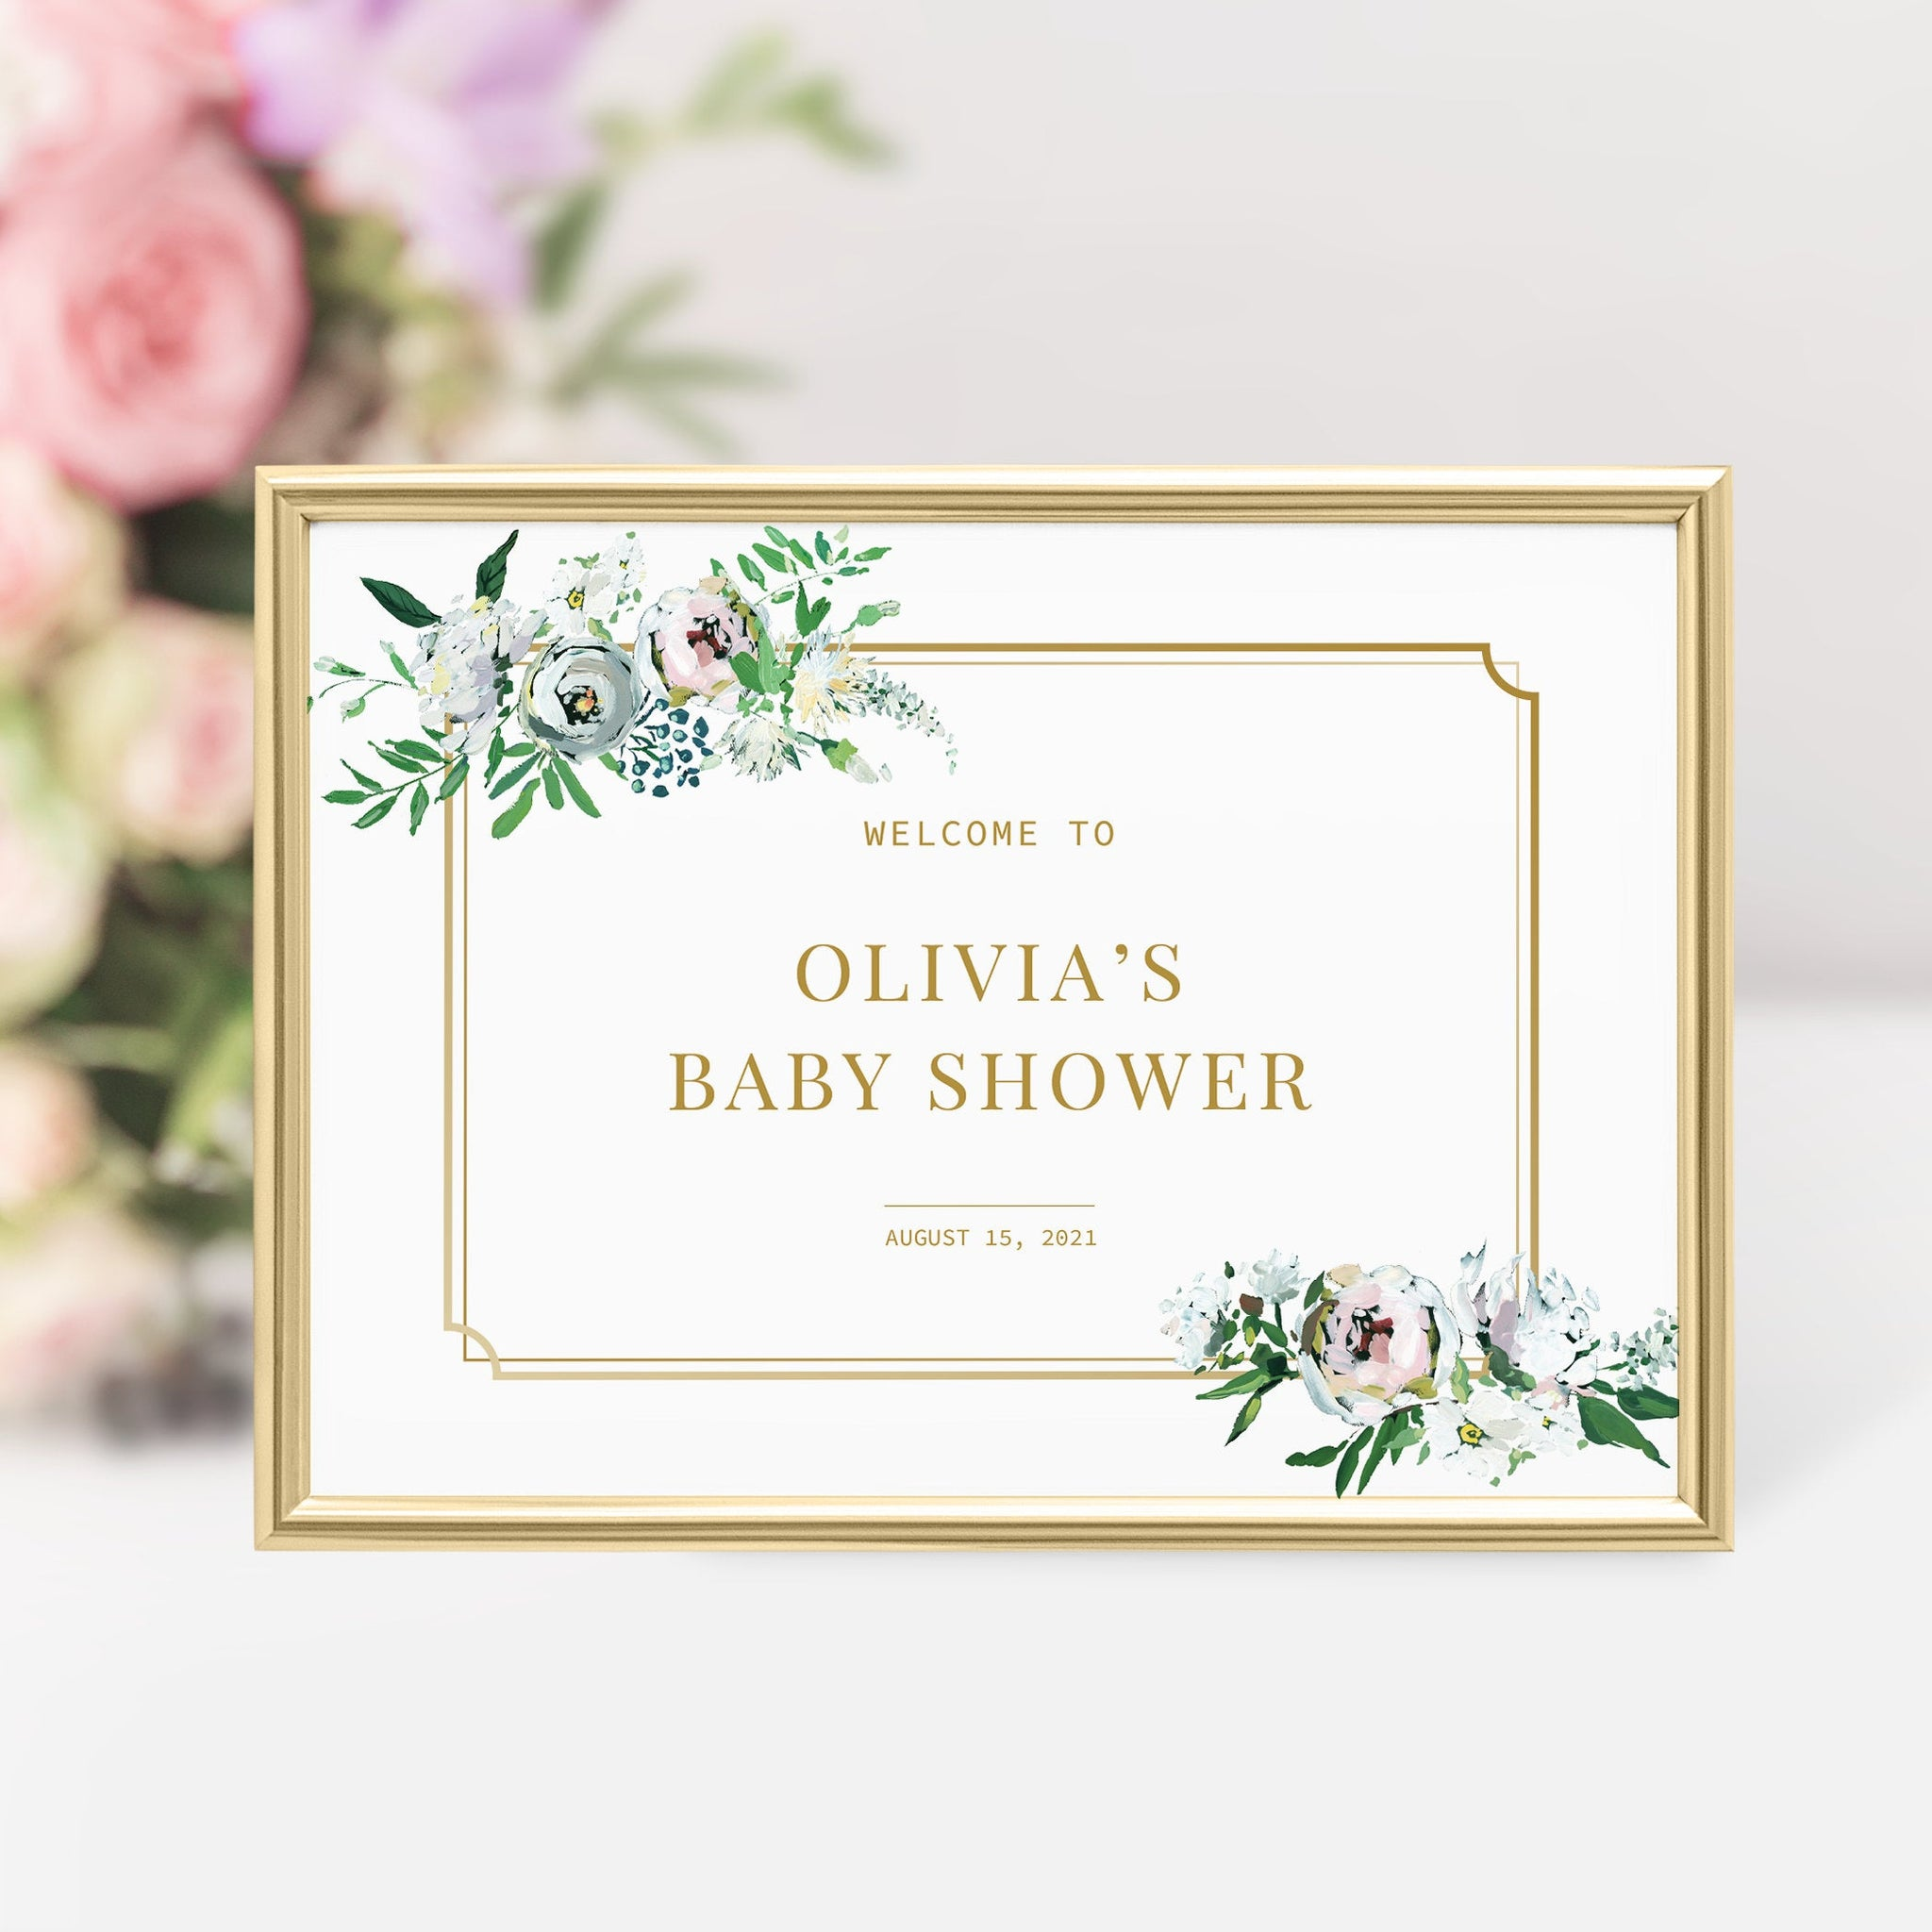 Personalized Baby Shower Welcome Sign Template, Large Welcome Sign Printable, Gold and Pink Floral Baby Shower Sign, DIGITAL DOWNLOAD BGF100